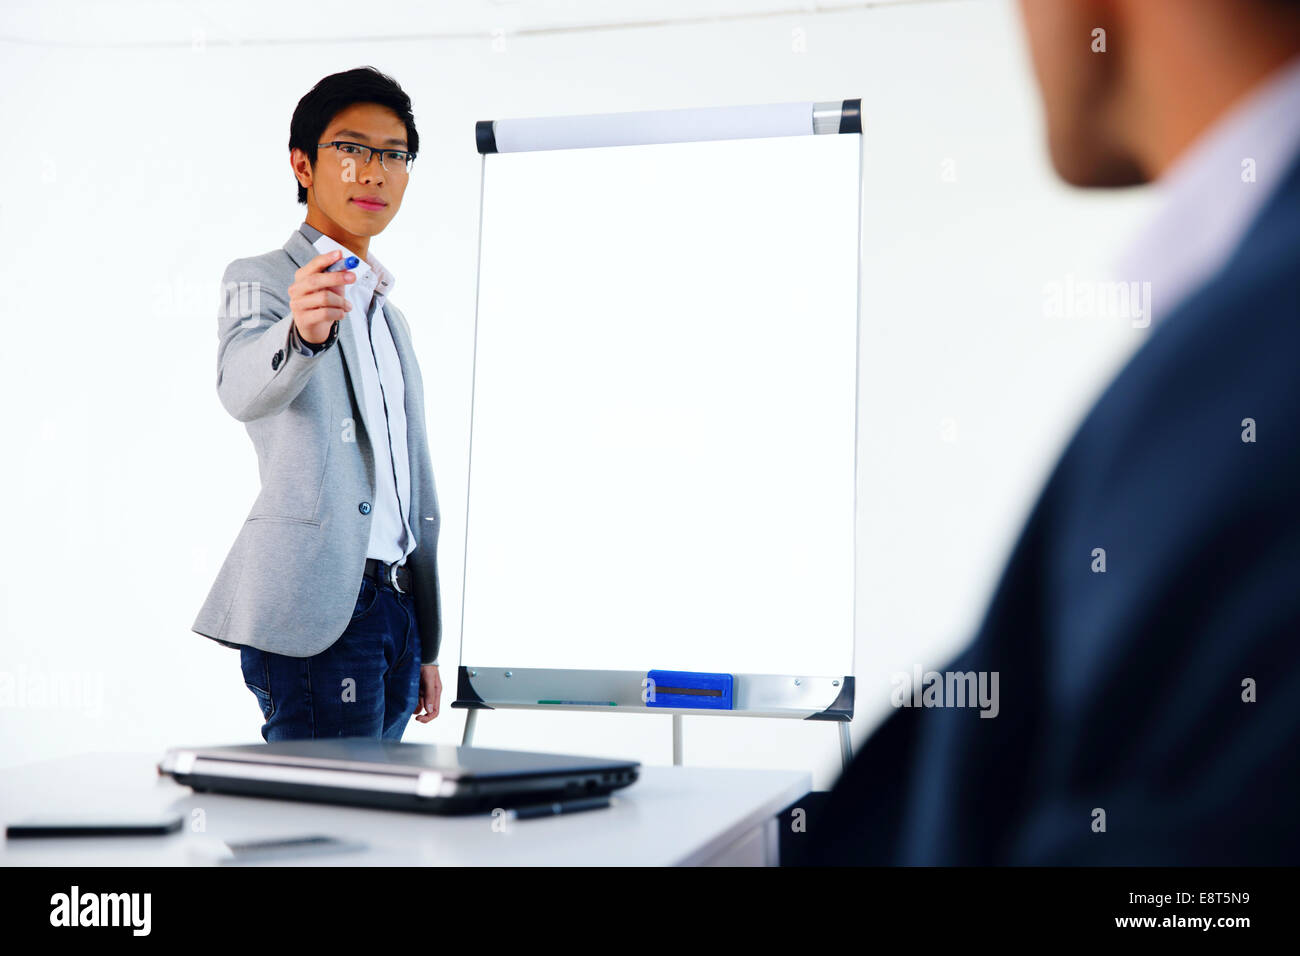 Portrait of a businessman presenting something on a meeting - Stock Image